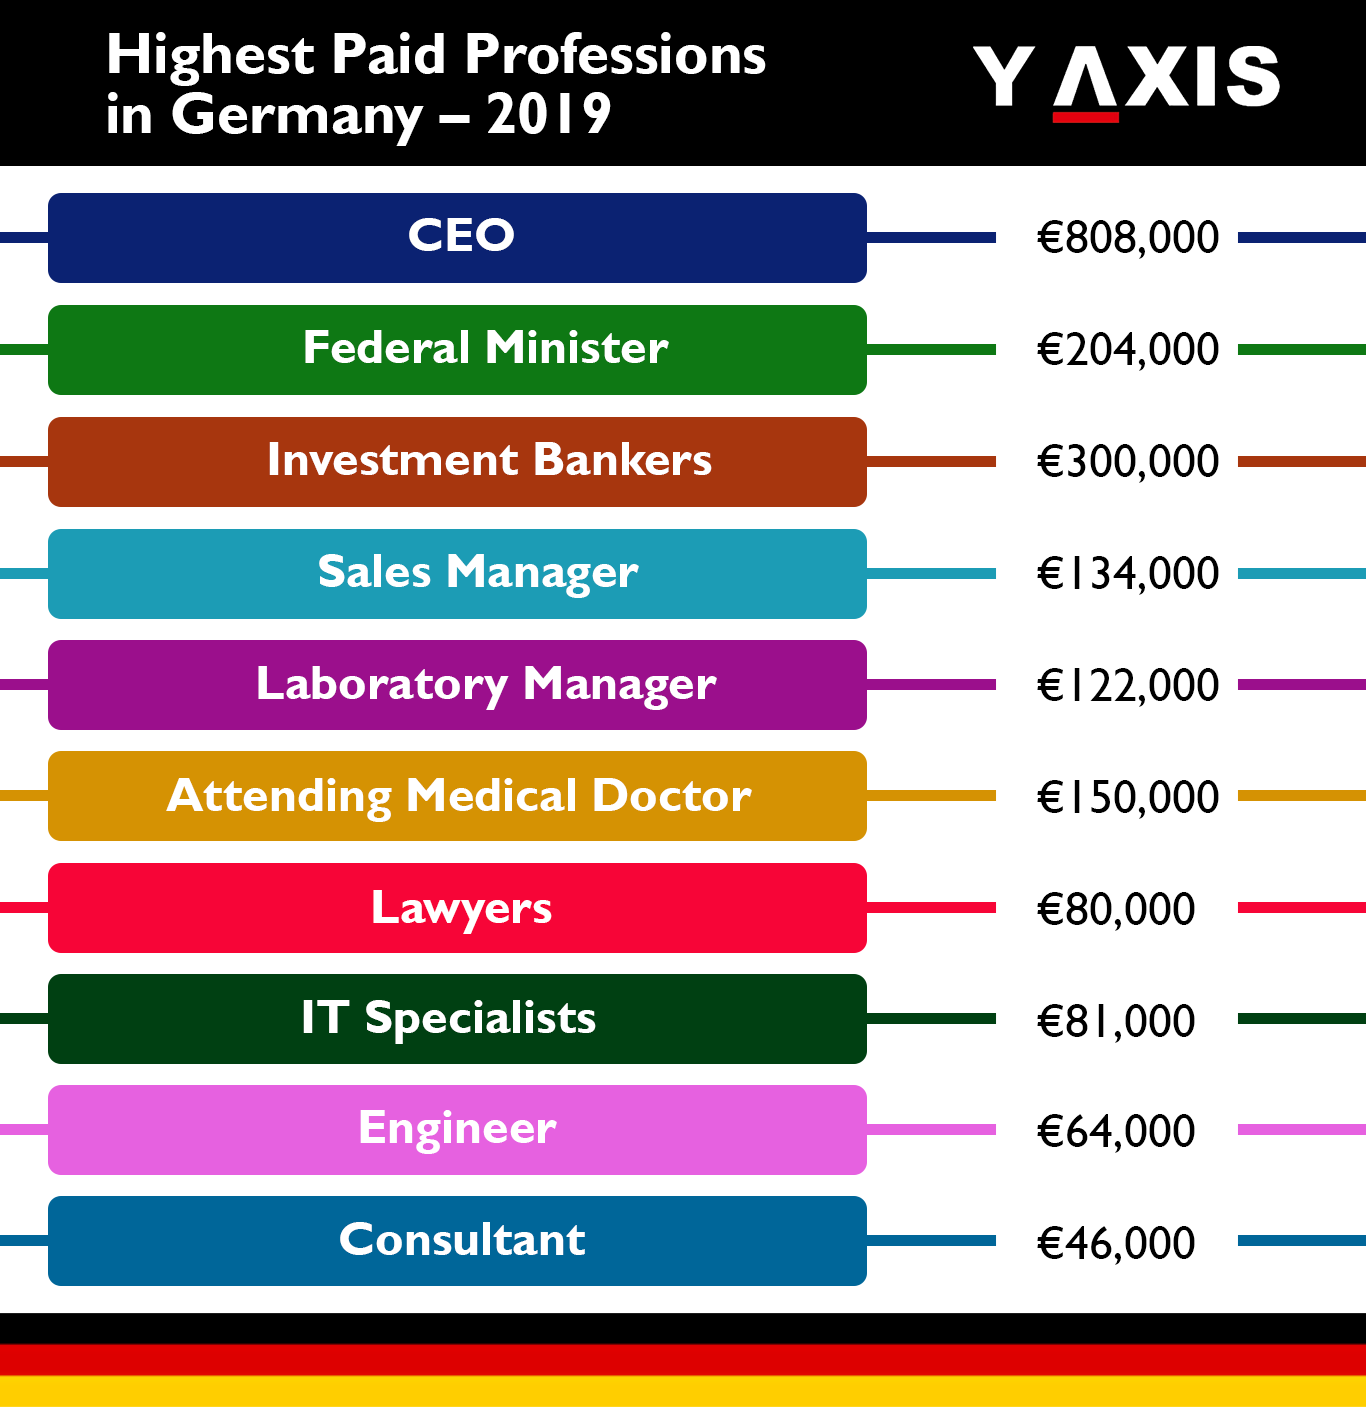 What Are The Highest Paying Jobs In Germany In 2019